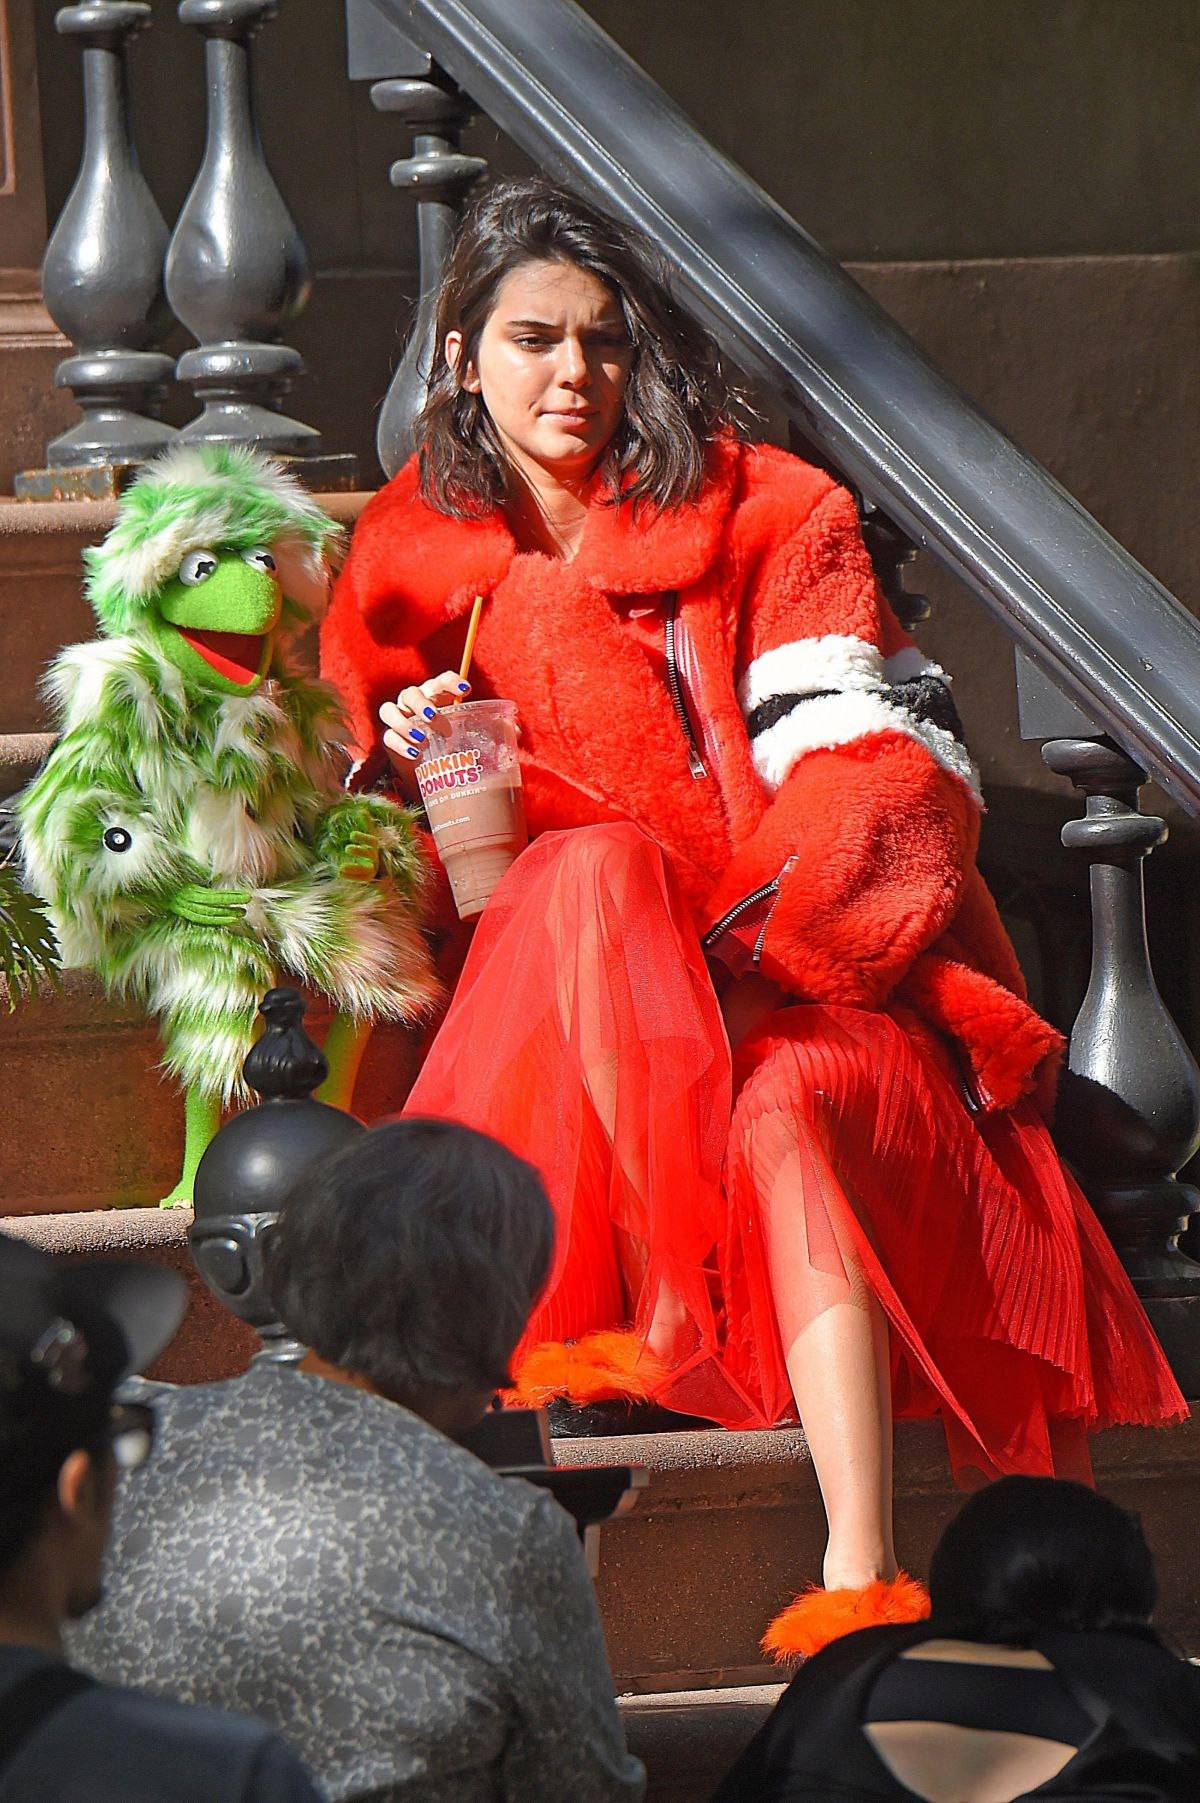 KENDALL JENNER at a Muppets-themed Photoshoot in New York 05/02/2017